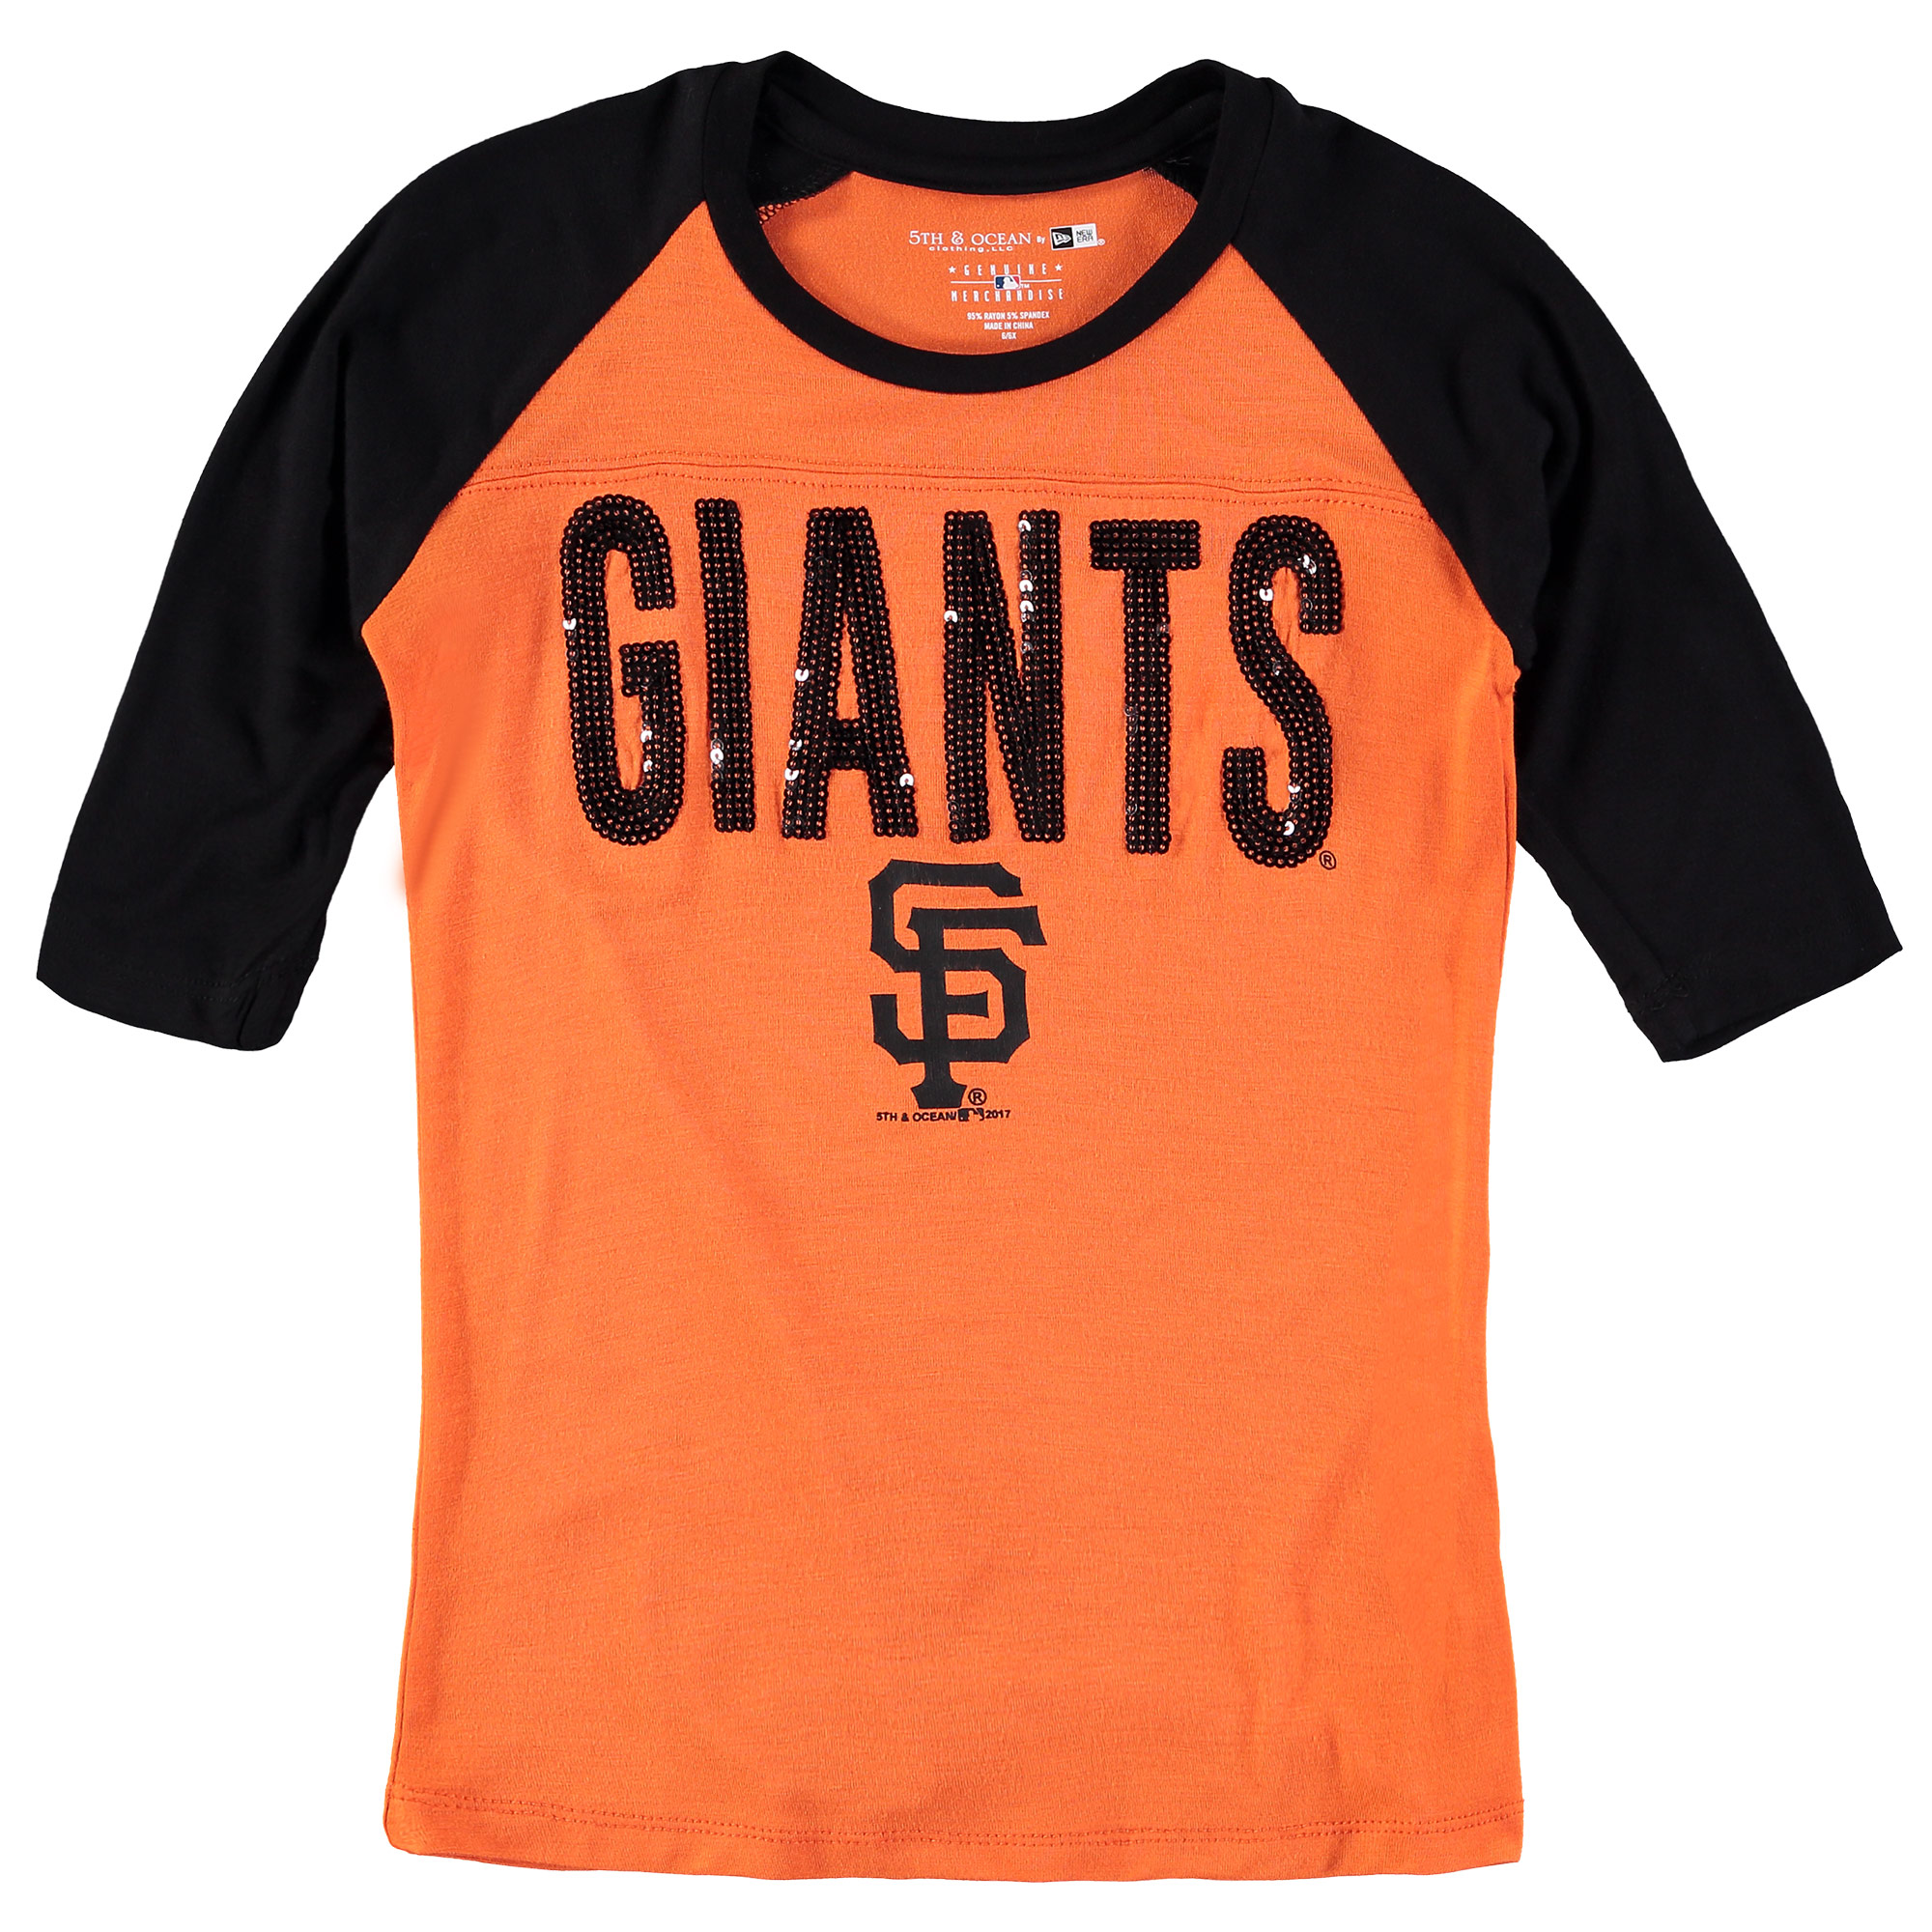 San Francisco Giants New Era Girls Youth Crew Neck Raglan 3/4-Sleeve T-Shirt Orange/Black